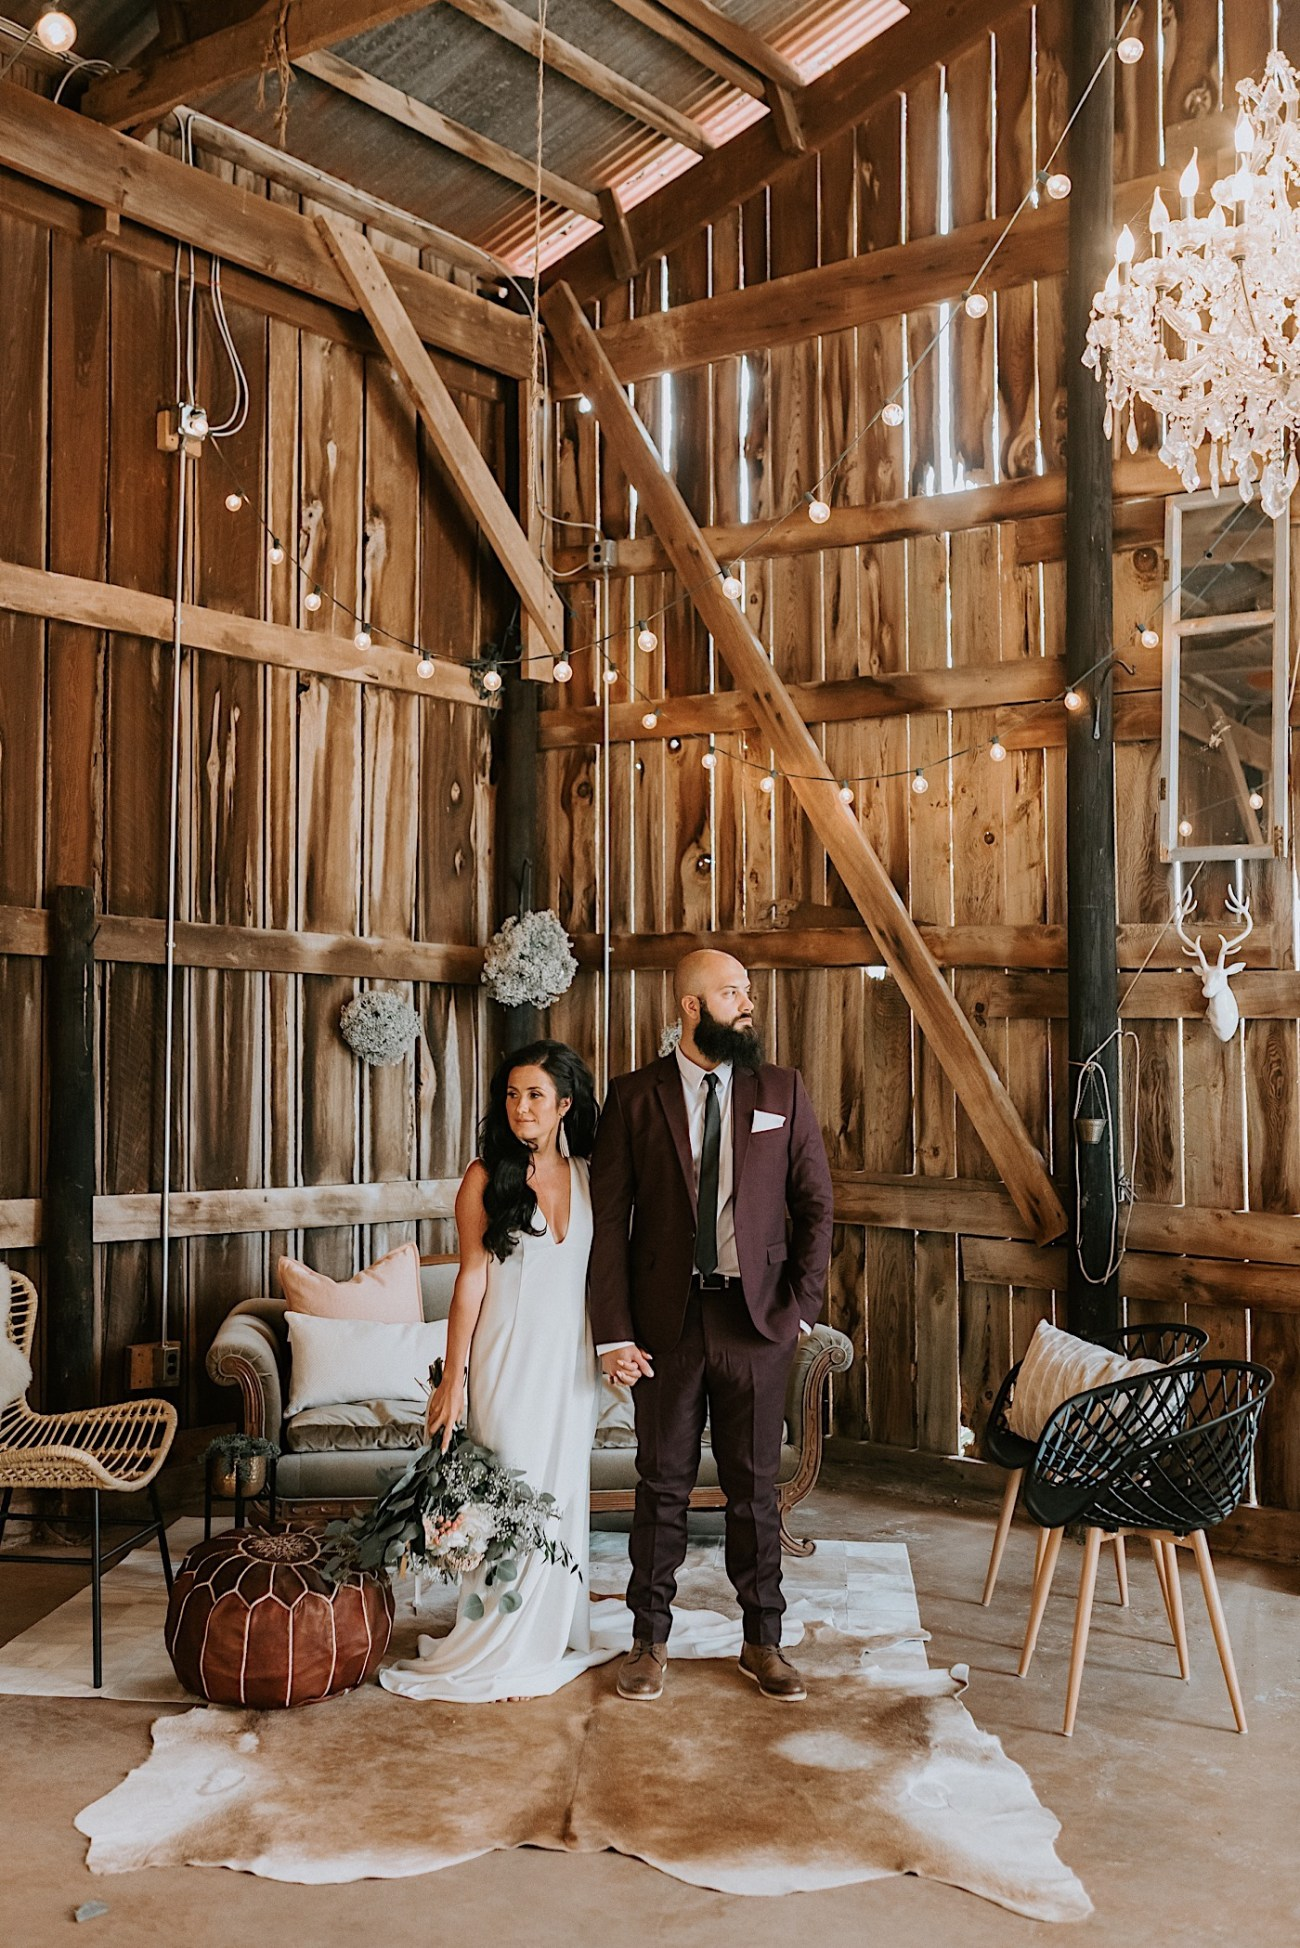 Gilbertsville Farmhouse Wedding Barn Inspiration Wedding Upstate New York Wedding Catskill Hudsonvalley Wedding 17